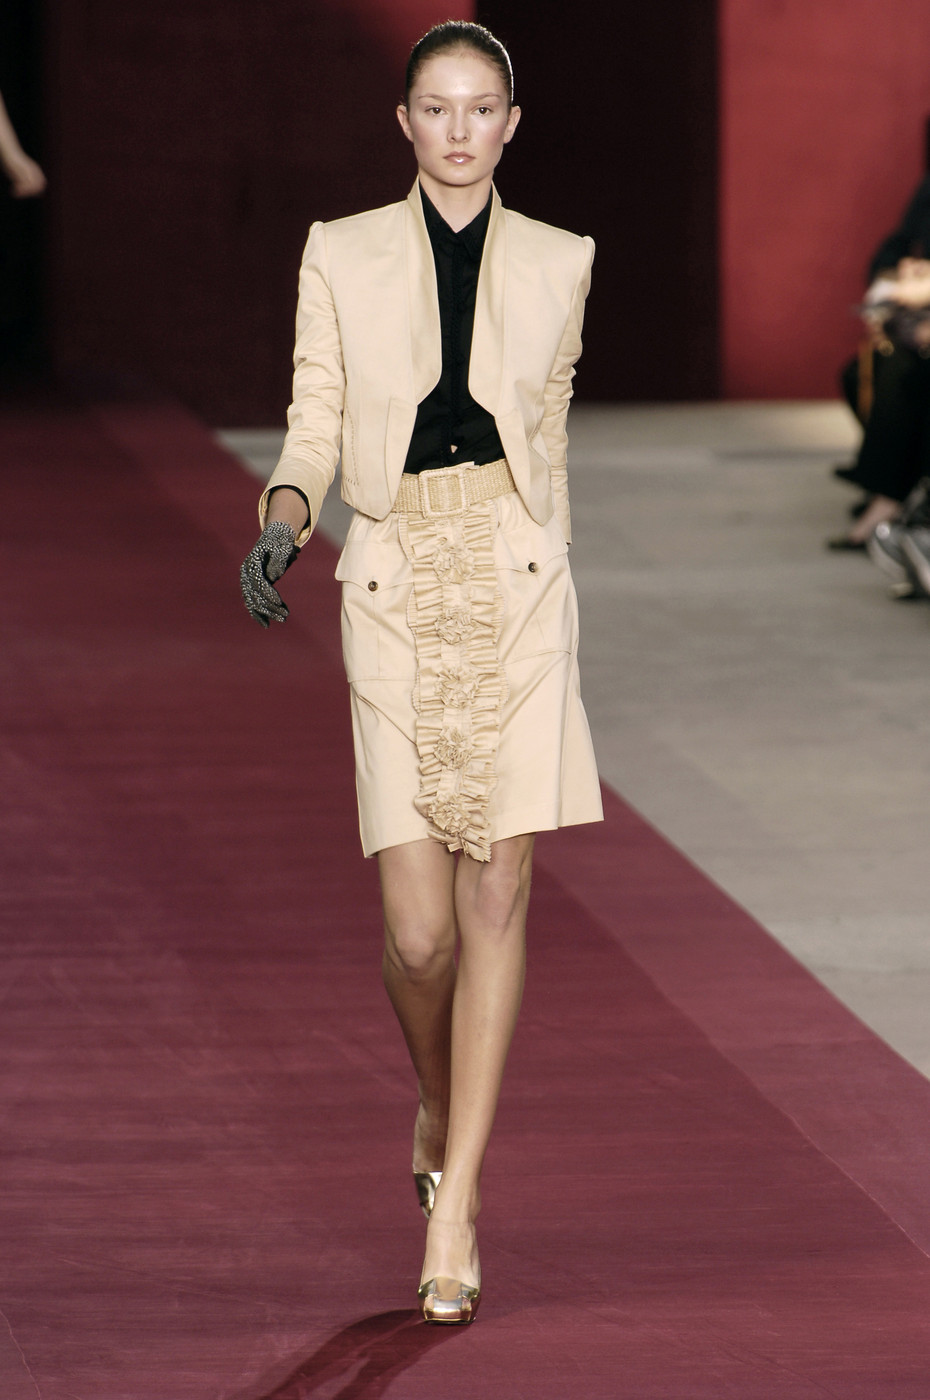 Yves Saint Laurent At Paris Fashion Week Spring 2006 Livingly